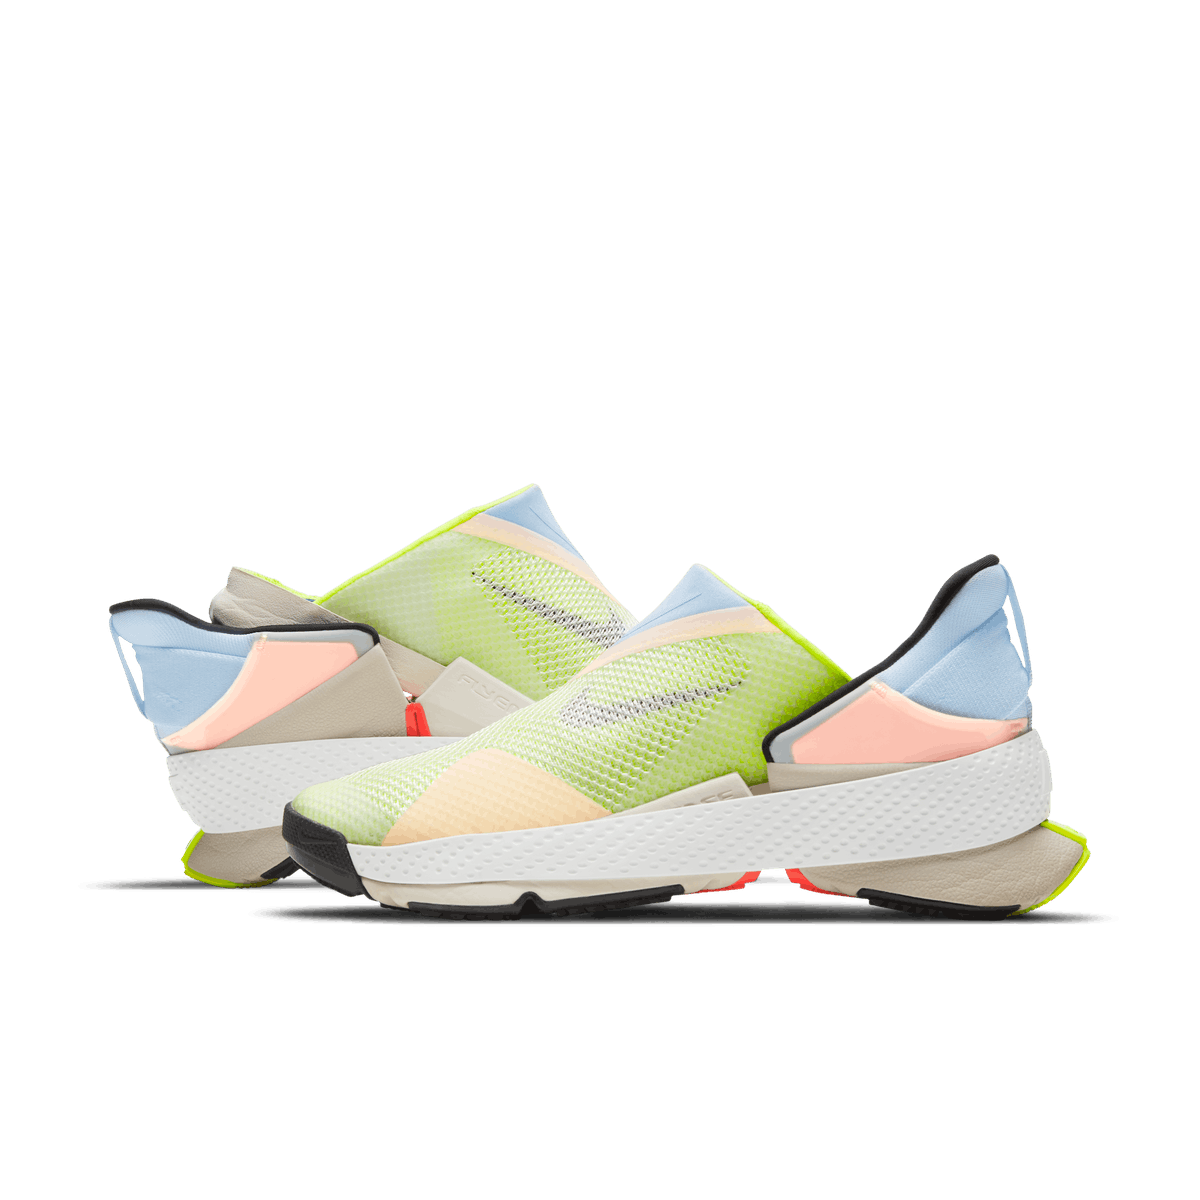 A product image of the hands-free Nike GO FlyEase sneakers.